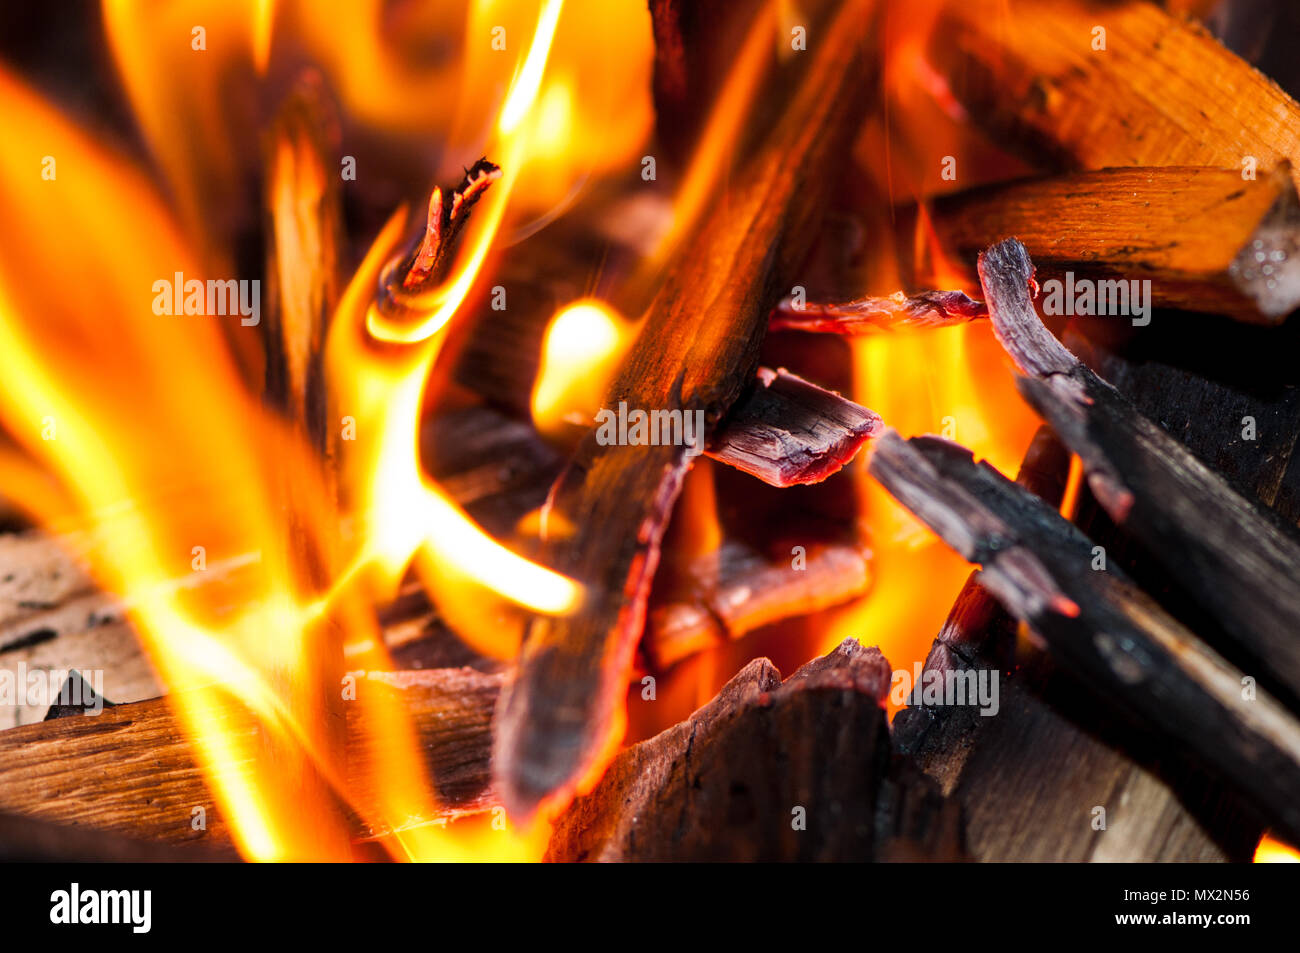 Wood Pellets In The Fire Stock Photos Amp Wood Pellets In